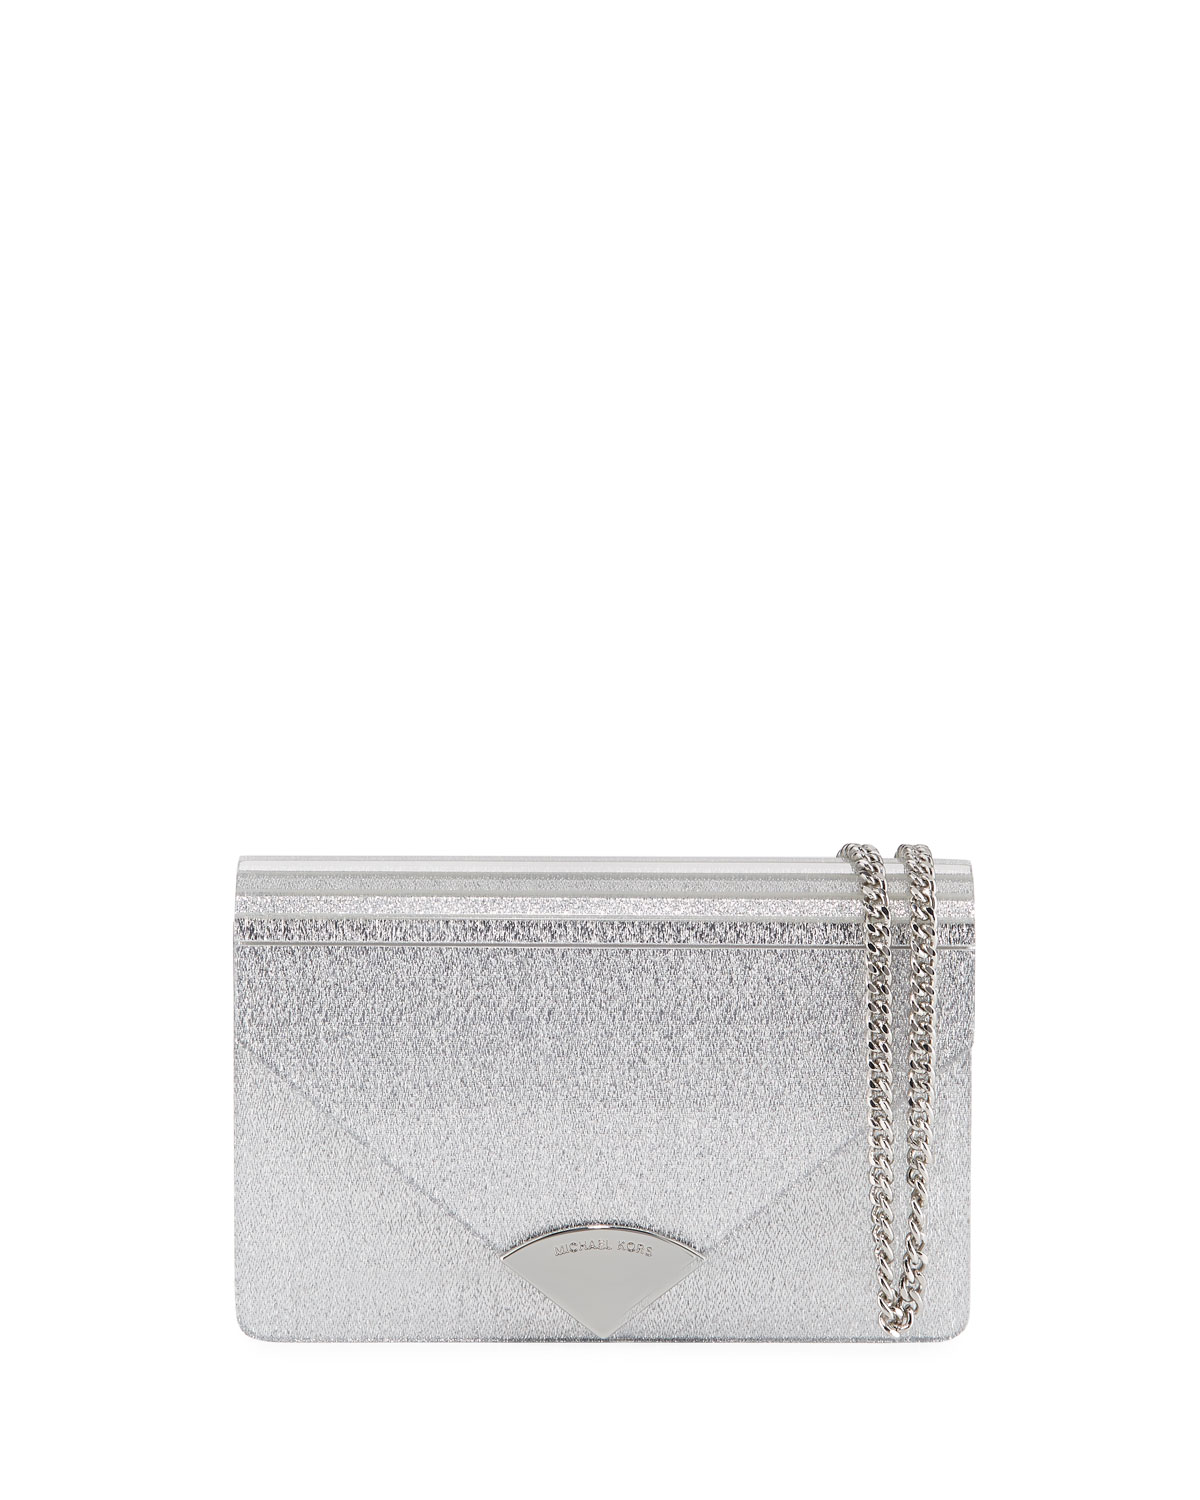 050cfa1a45d511 MICHAEL Michael Kors Barbara Medium Envelope Clutch Bag - Silver Hardware